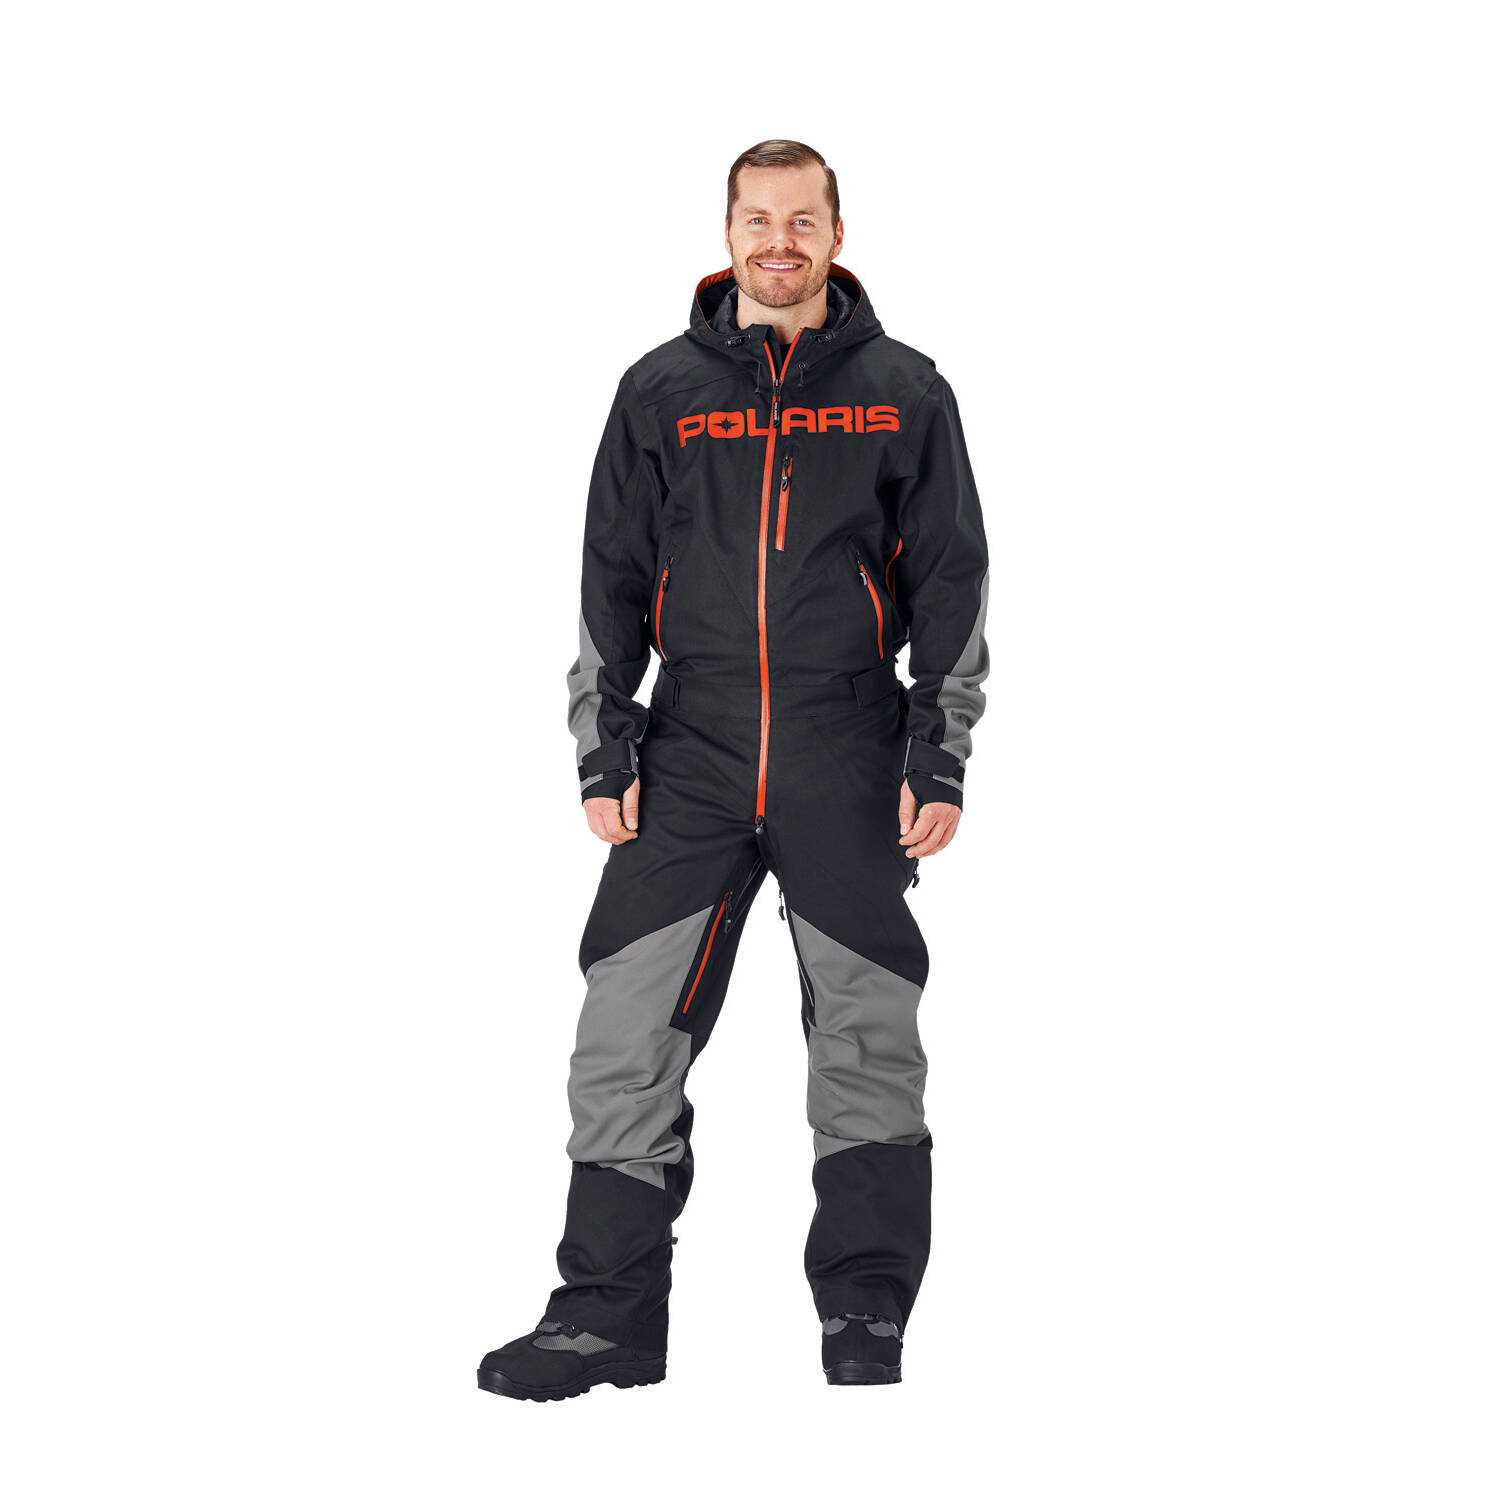 Men's Full-Zip Monosuit/Snowsuit with Water Repellent Coating, Black